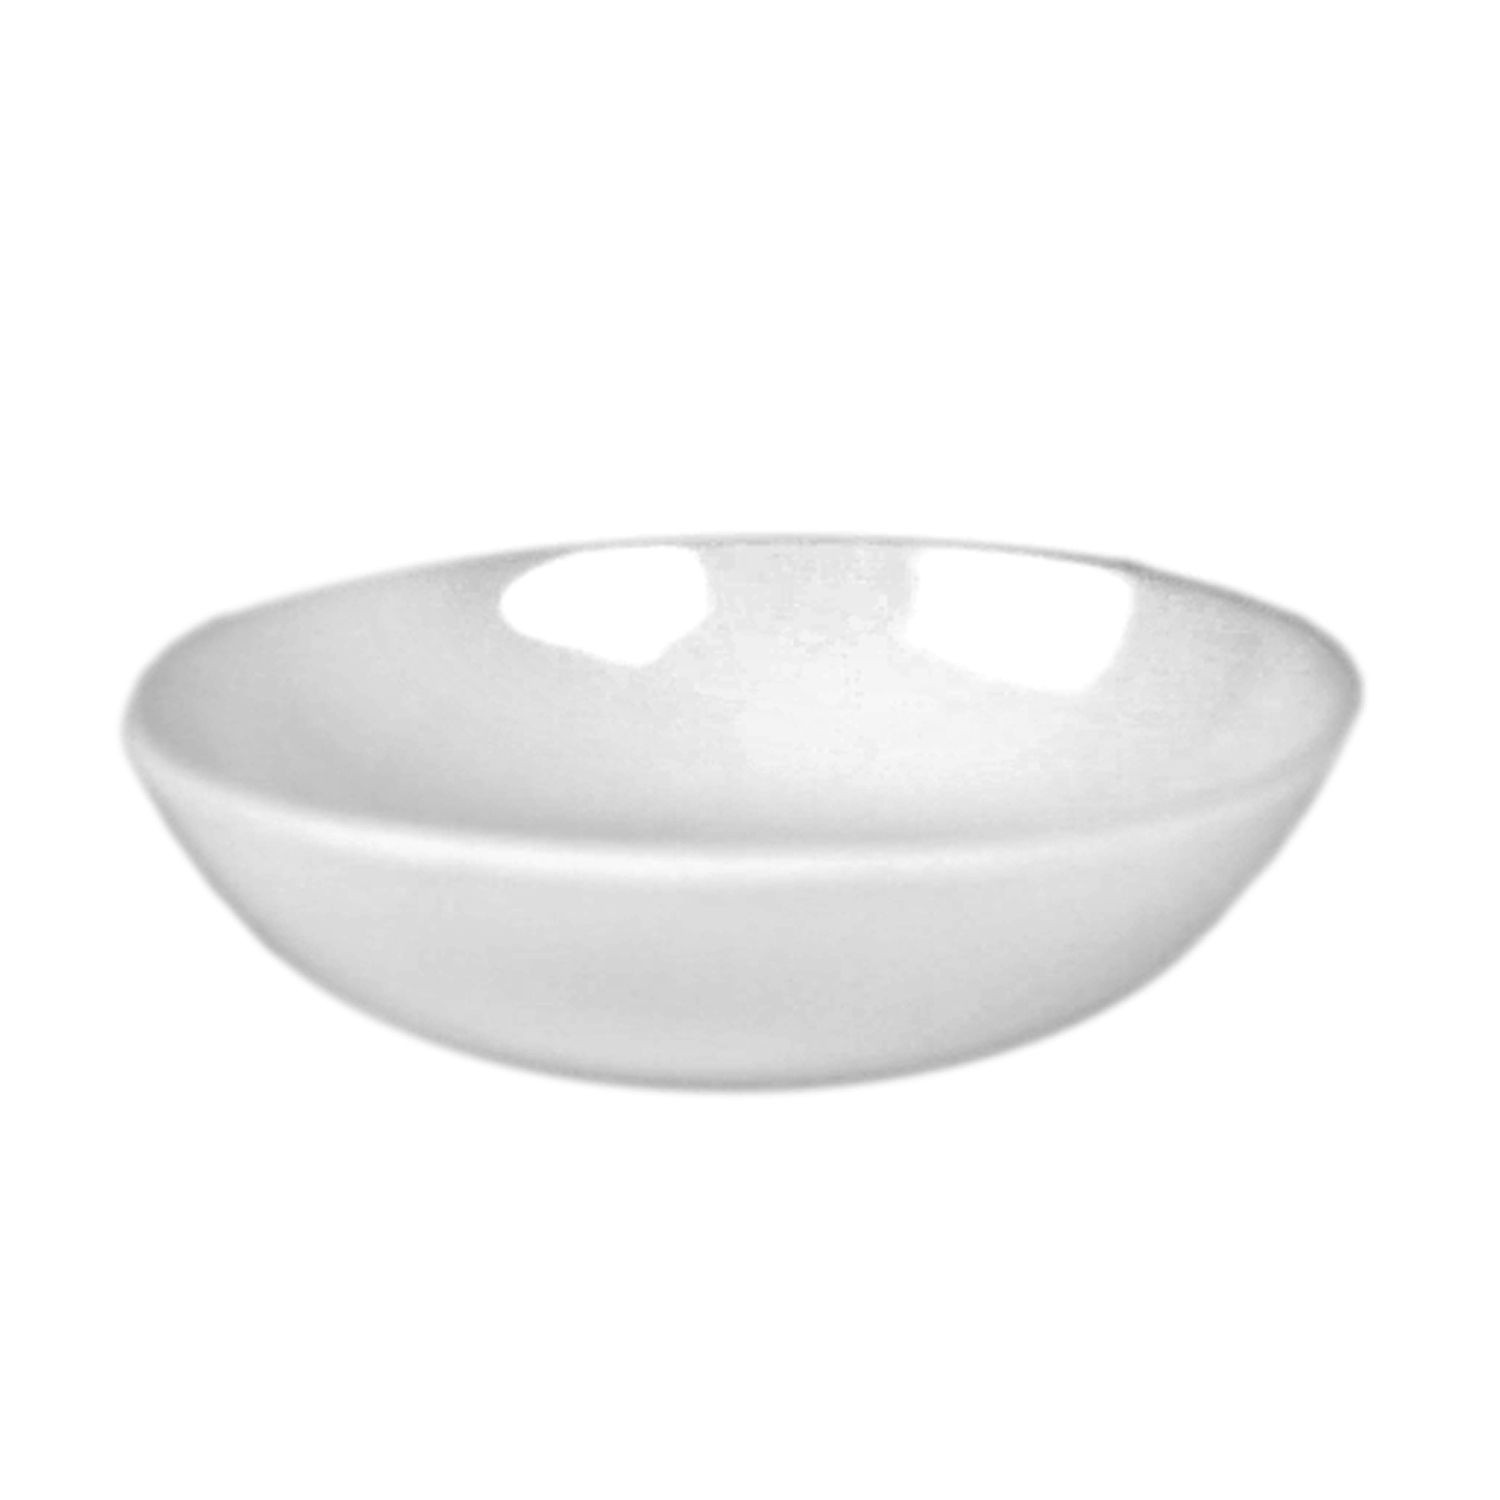 Thunder Group 1101TW Imperial White Melamine Sauce Dish 1 oz.  sc 1 st  TigerChef & Asian Dinnerware